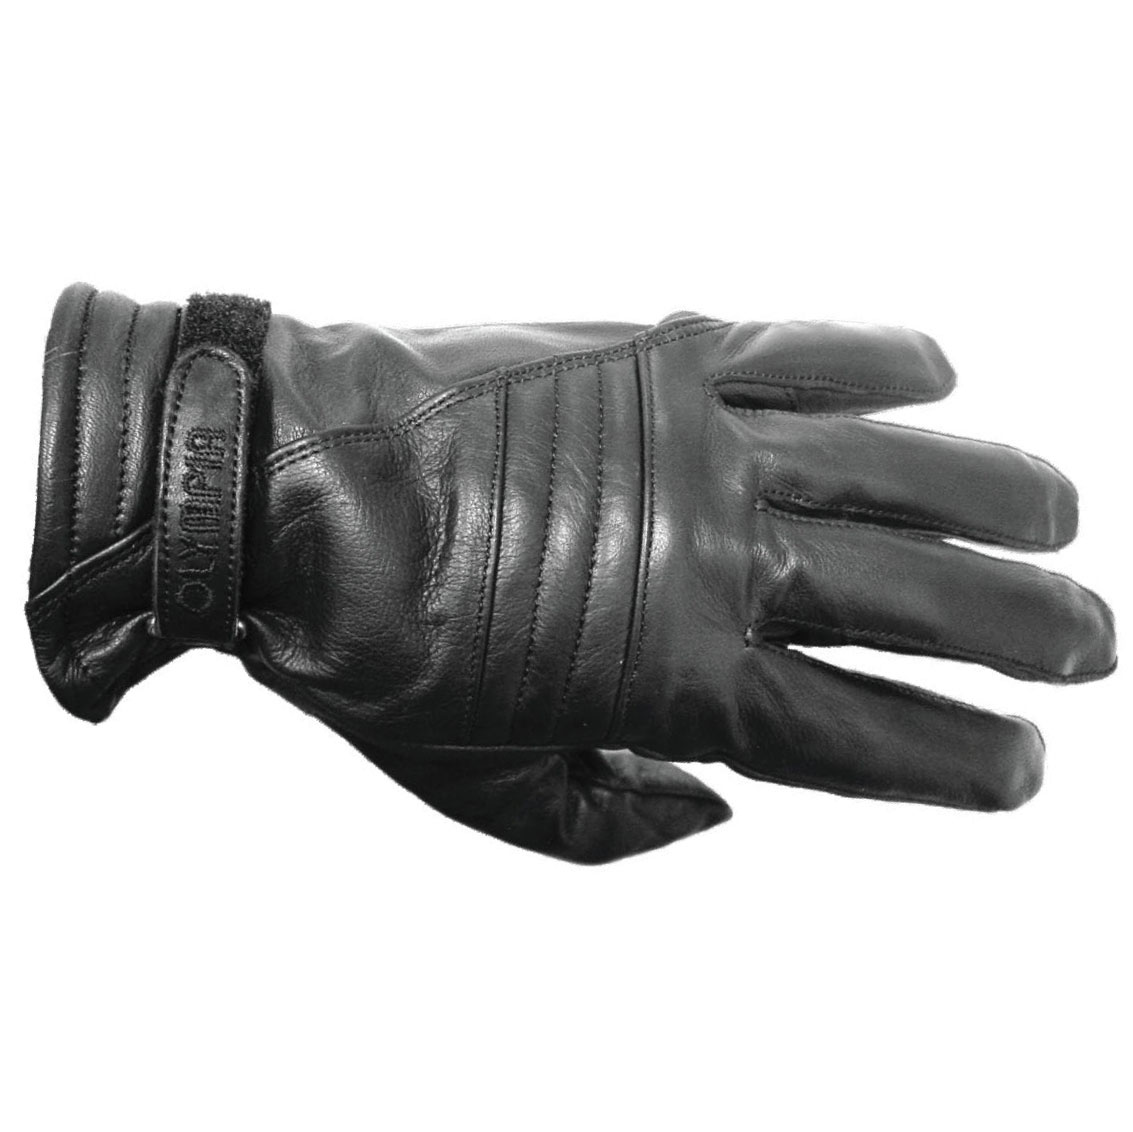 Olympia Gel Padded Gloves